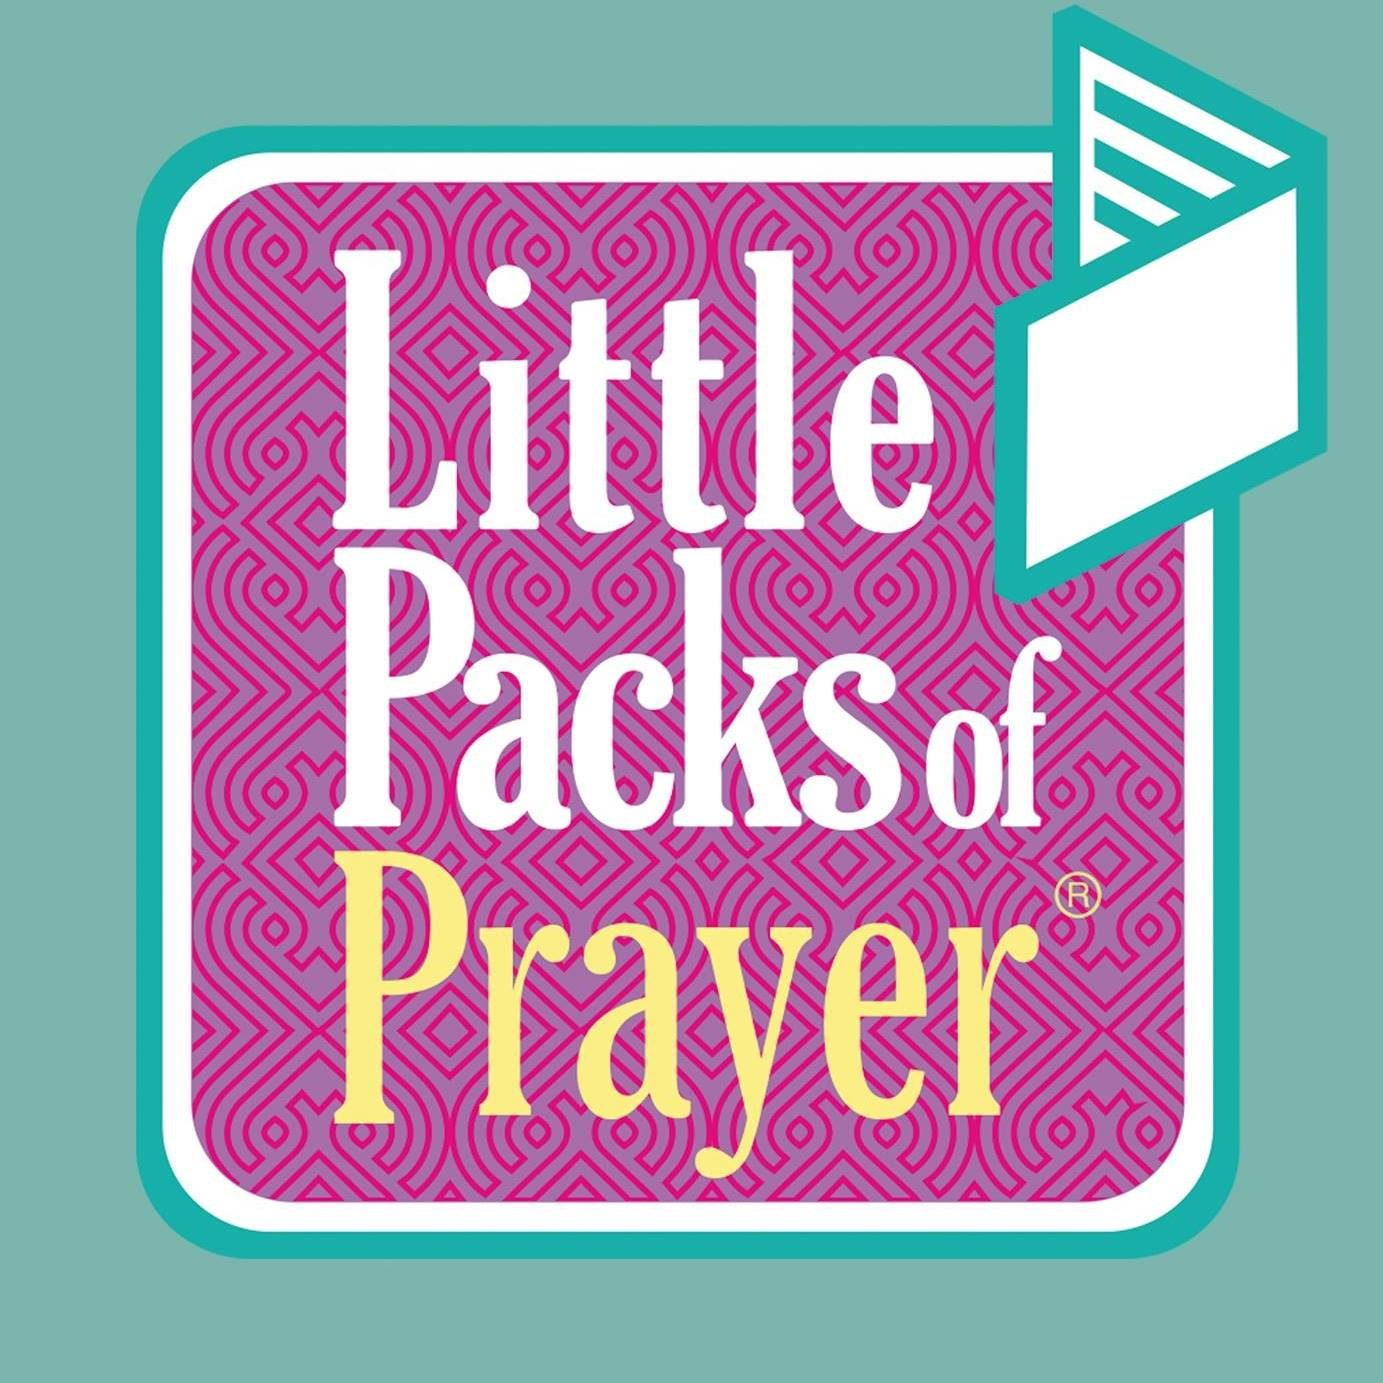 Little packs of Prayer